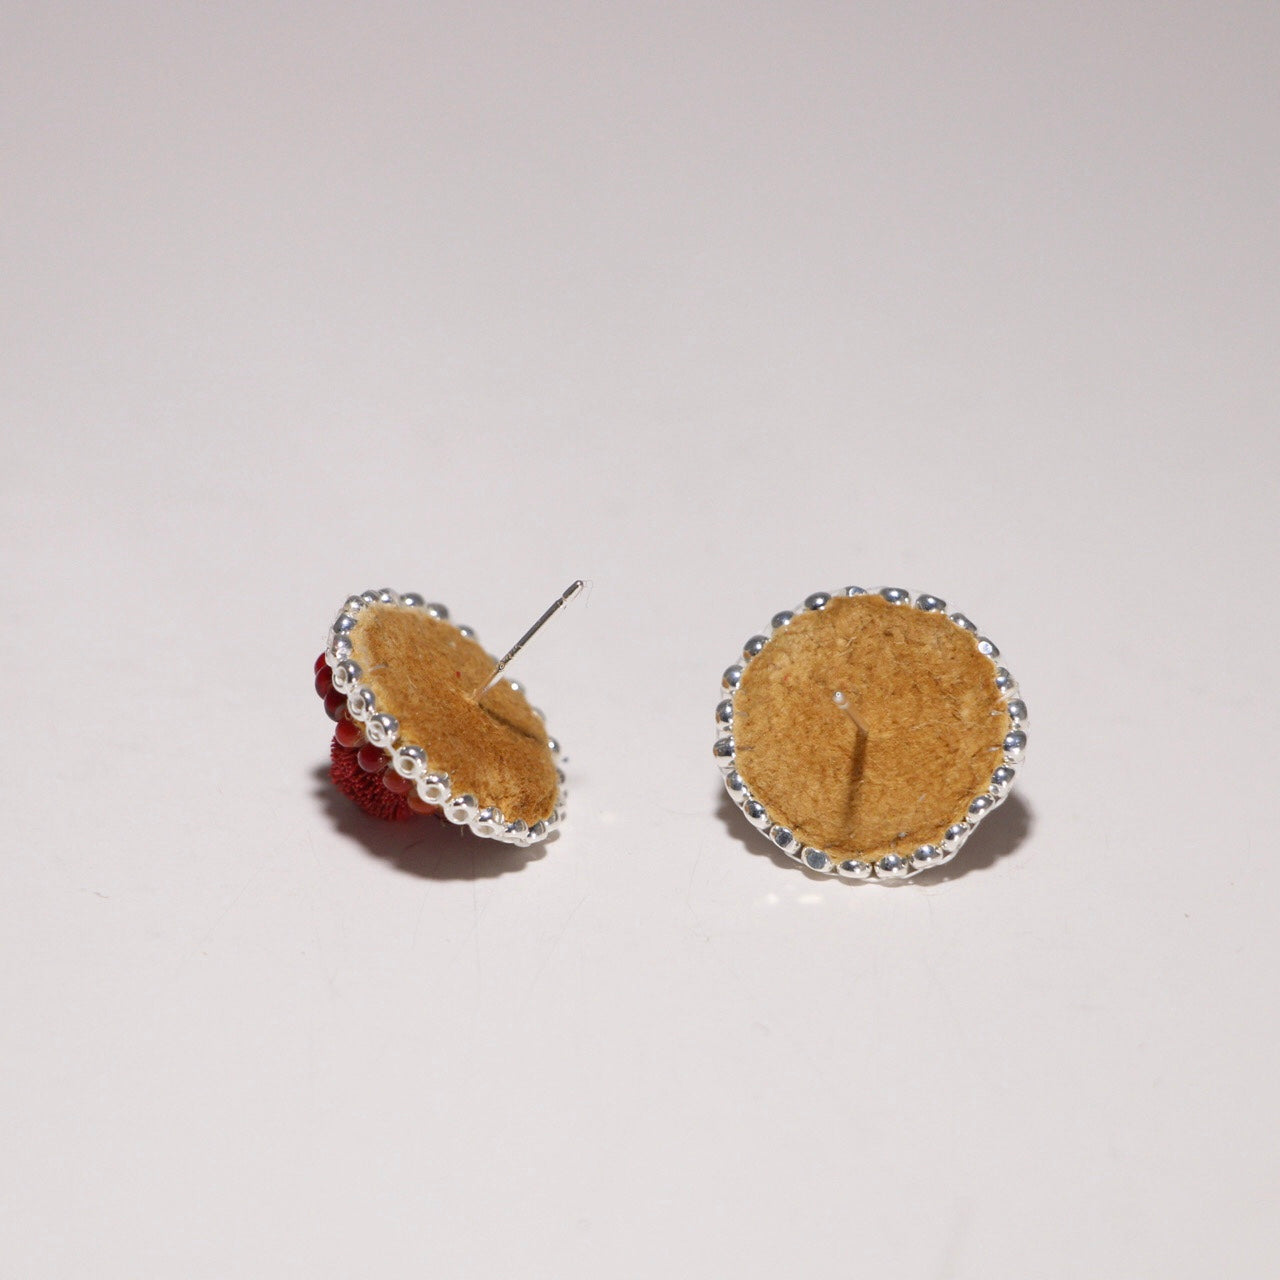 Earrings backed with caribou hide and sterling silver stud.